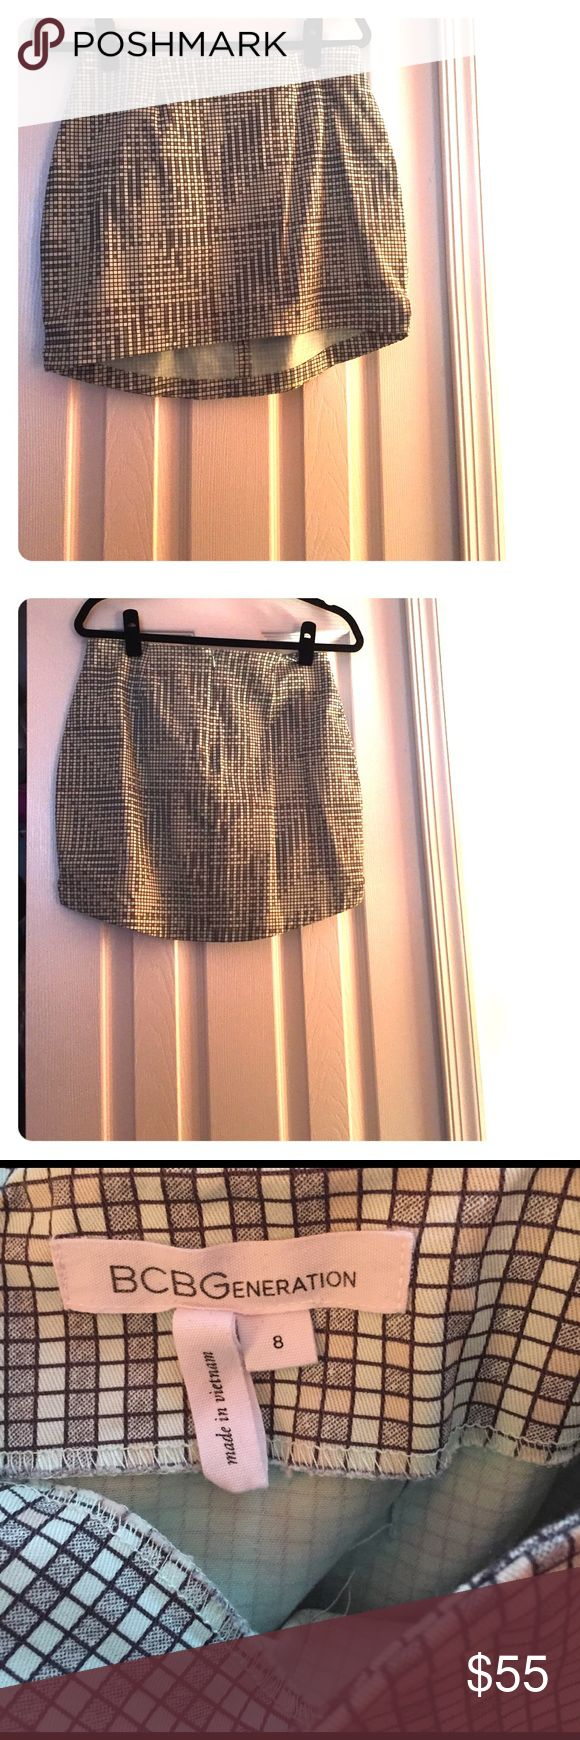 BCBGeneration Skirt This is a super cute mini skirt. Perfect for the spring and summer. The skirt is gray, sea foam green, and blush pink. Please see the last picture for an up close look at the print. This is a final sale no returns accepted. BCBGeneration Skirts Mini